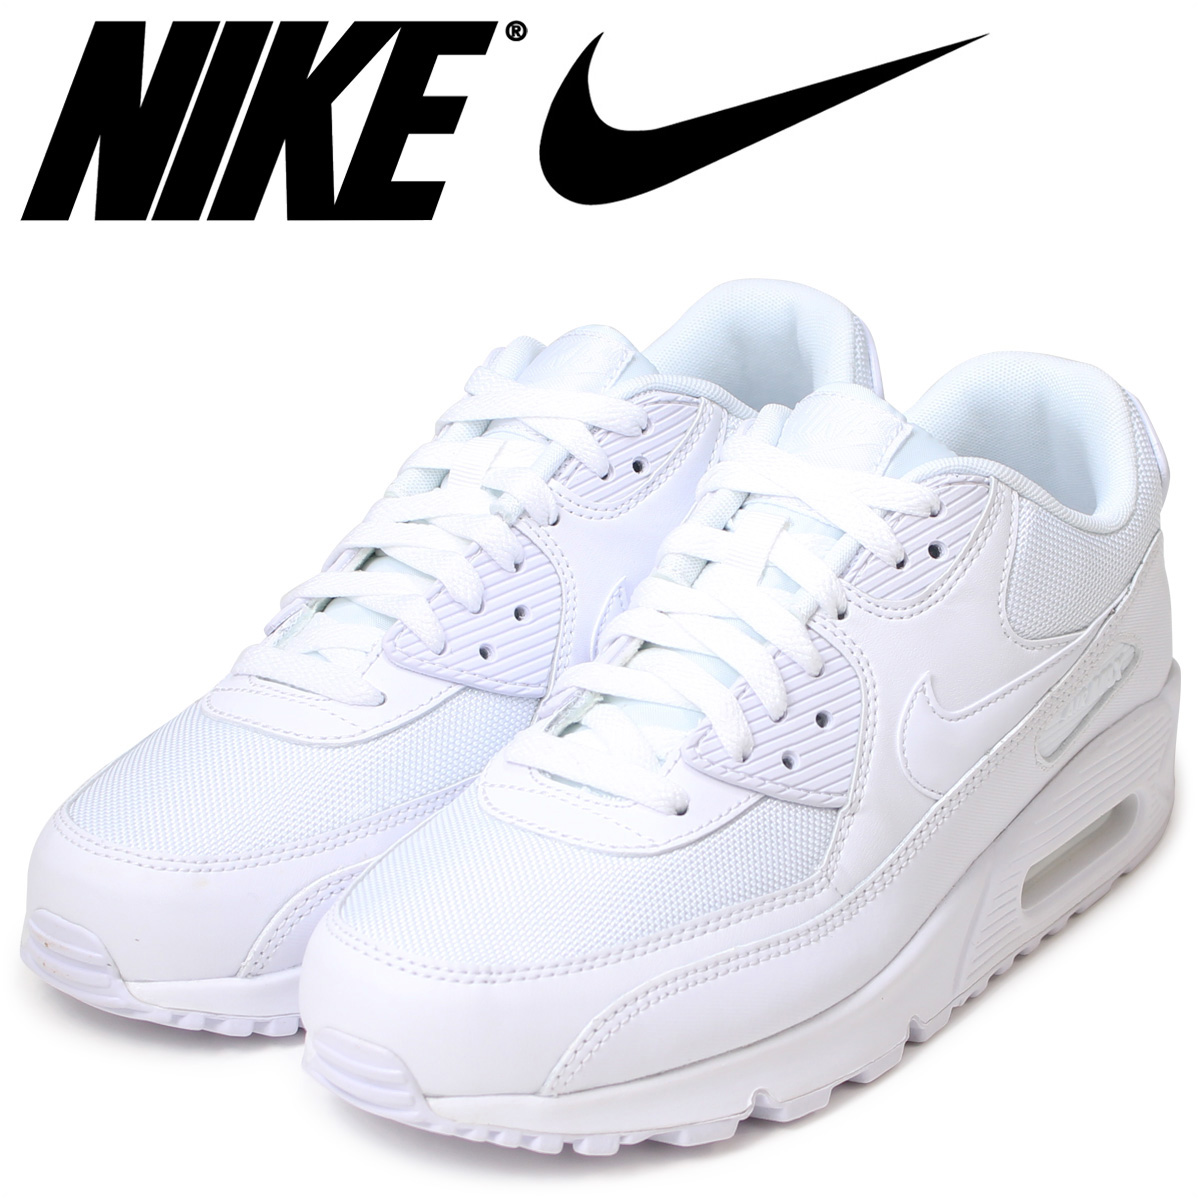 sports shoes 60213 77773 Nike NIKE Air Max 90 essential sneakers men AIR MAX 90 ESSENTIAL  537,384-111 white white  the load planned additional arrival in reservation  product 5 15 ...